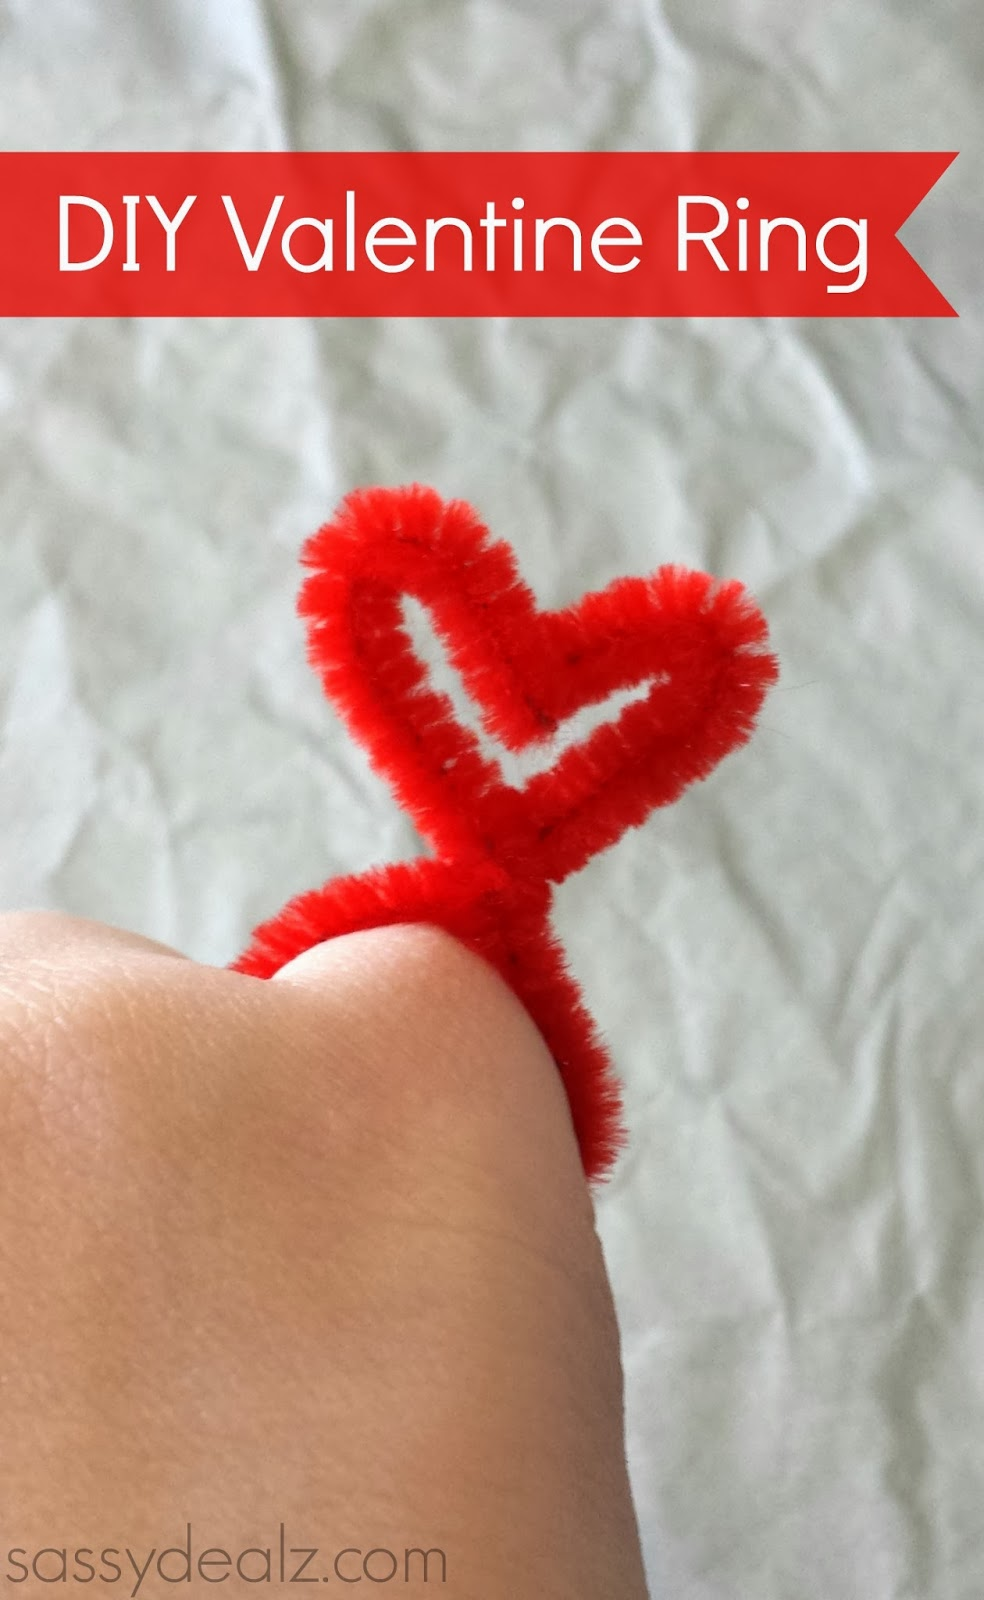 DIY Valentine Heart Rings Made From Pipe Cleaners - Crafty ...